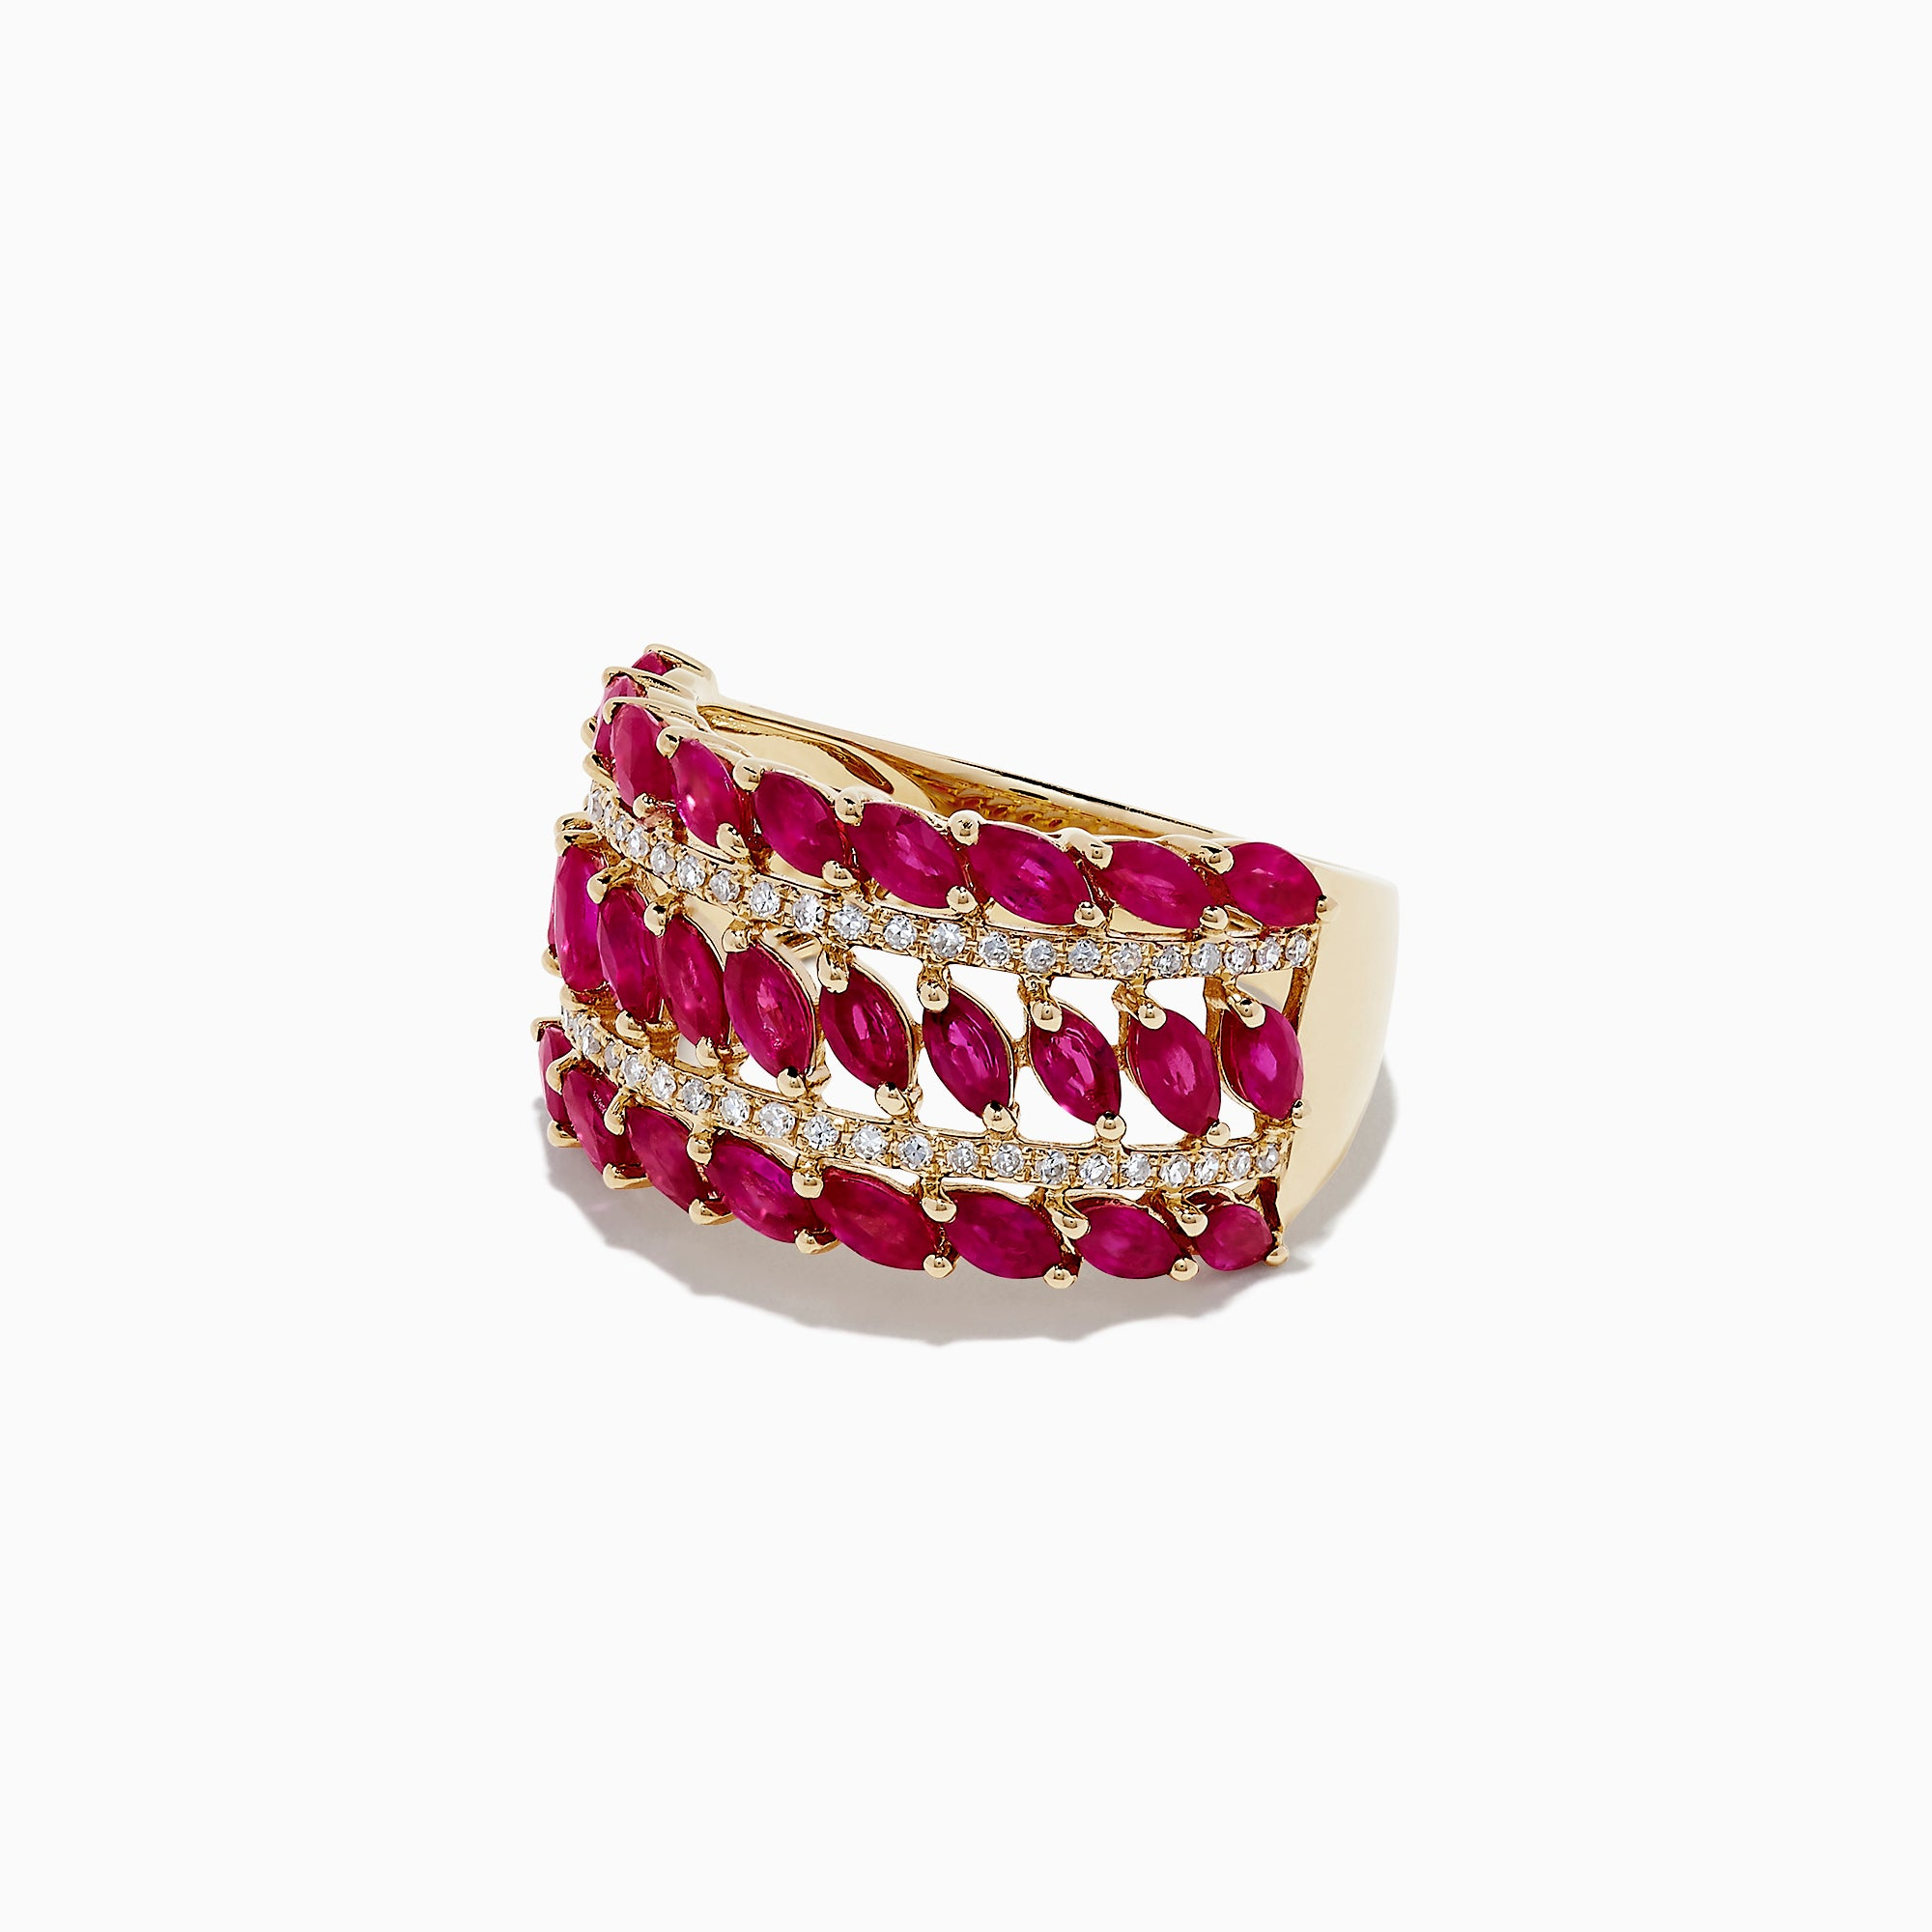 Effy 14K Yellow Gold Ruby and Diamond Ring, 2.96 TCW